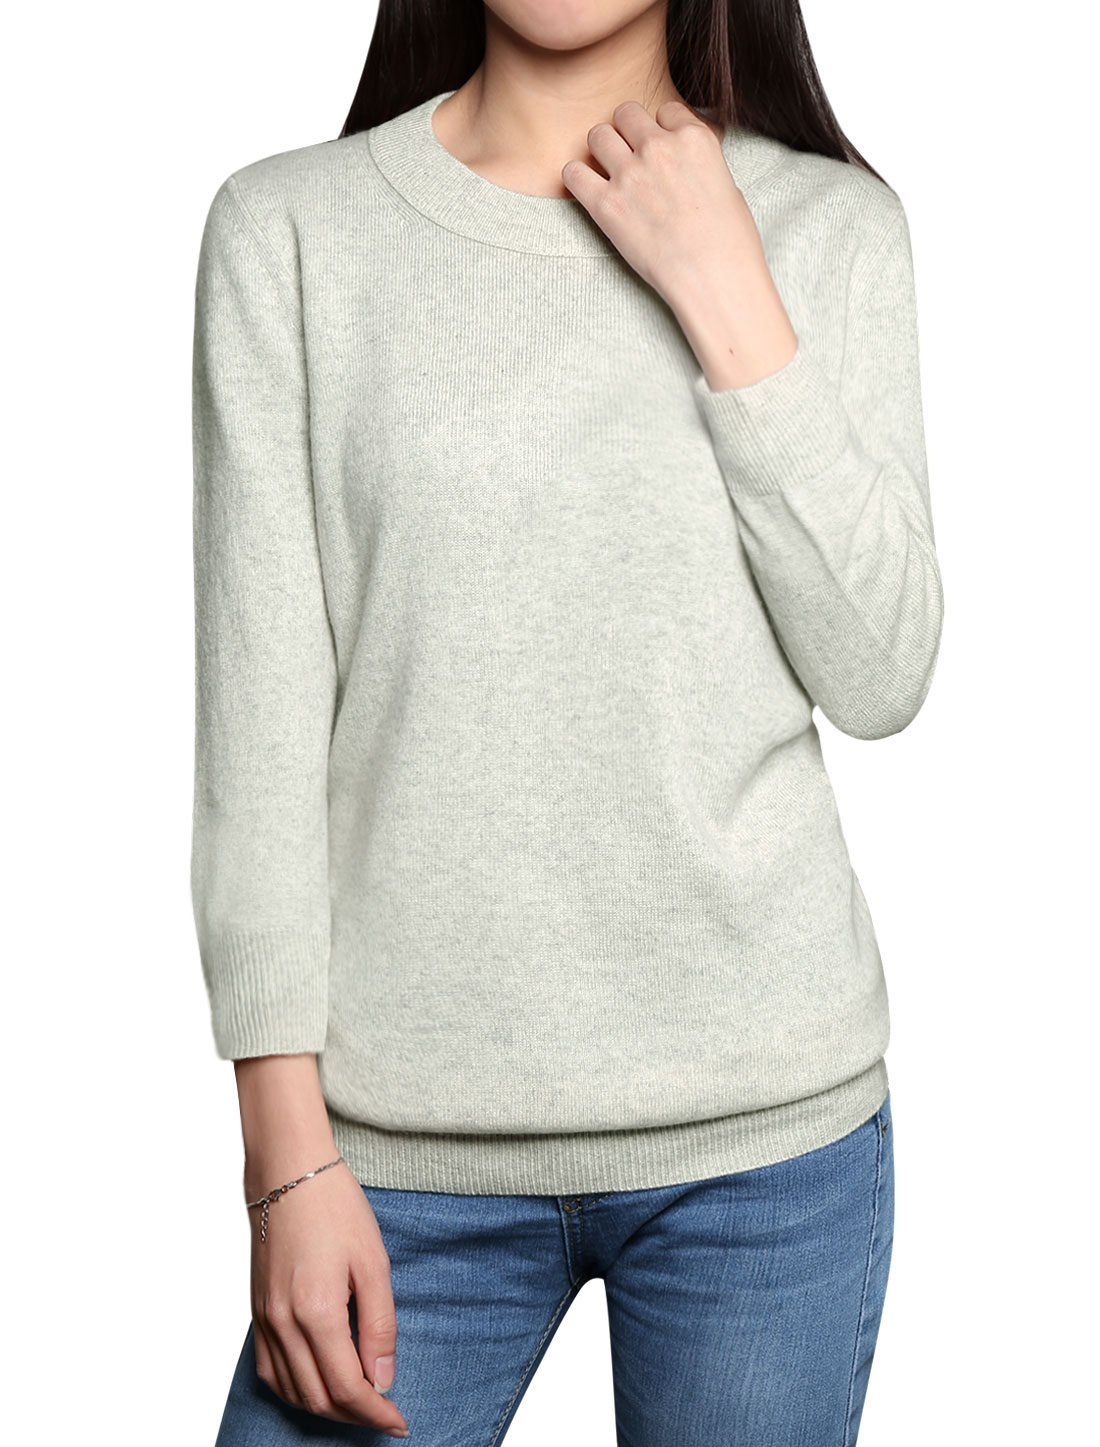 Women 3/4 Sleeves Cashmere Sweater Gray S